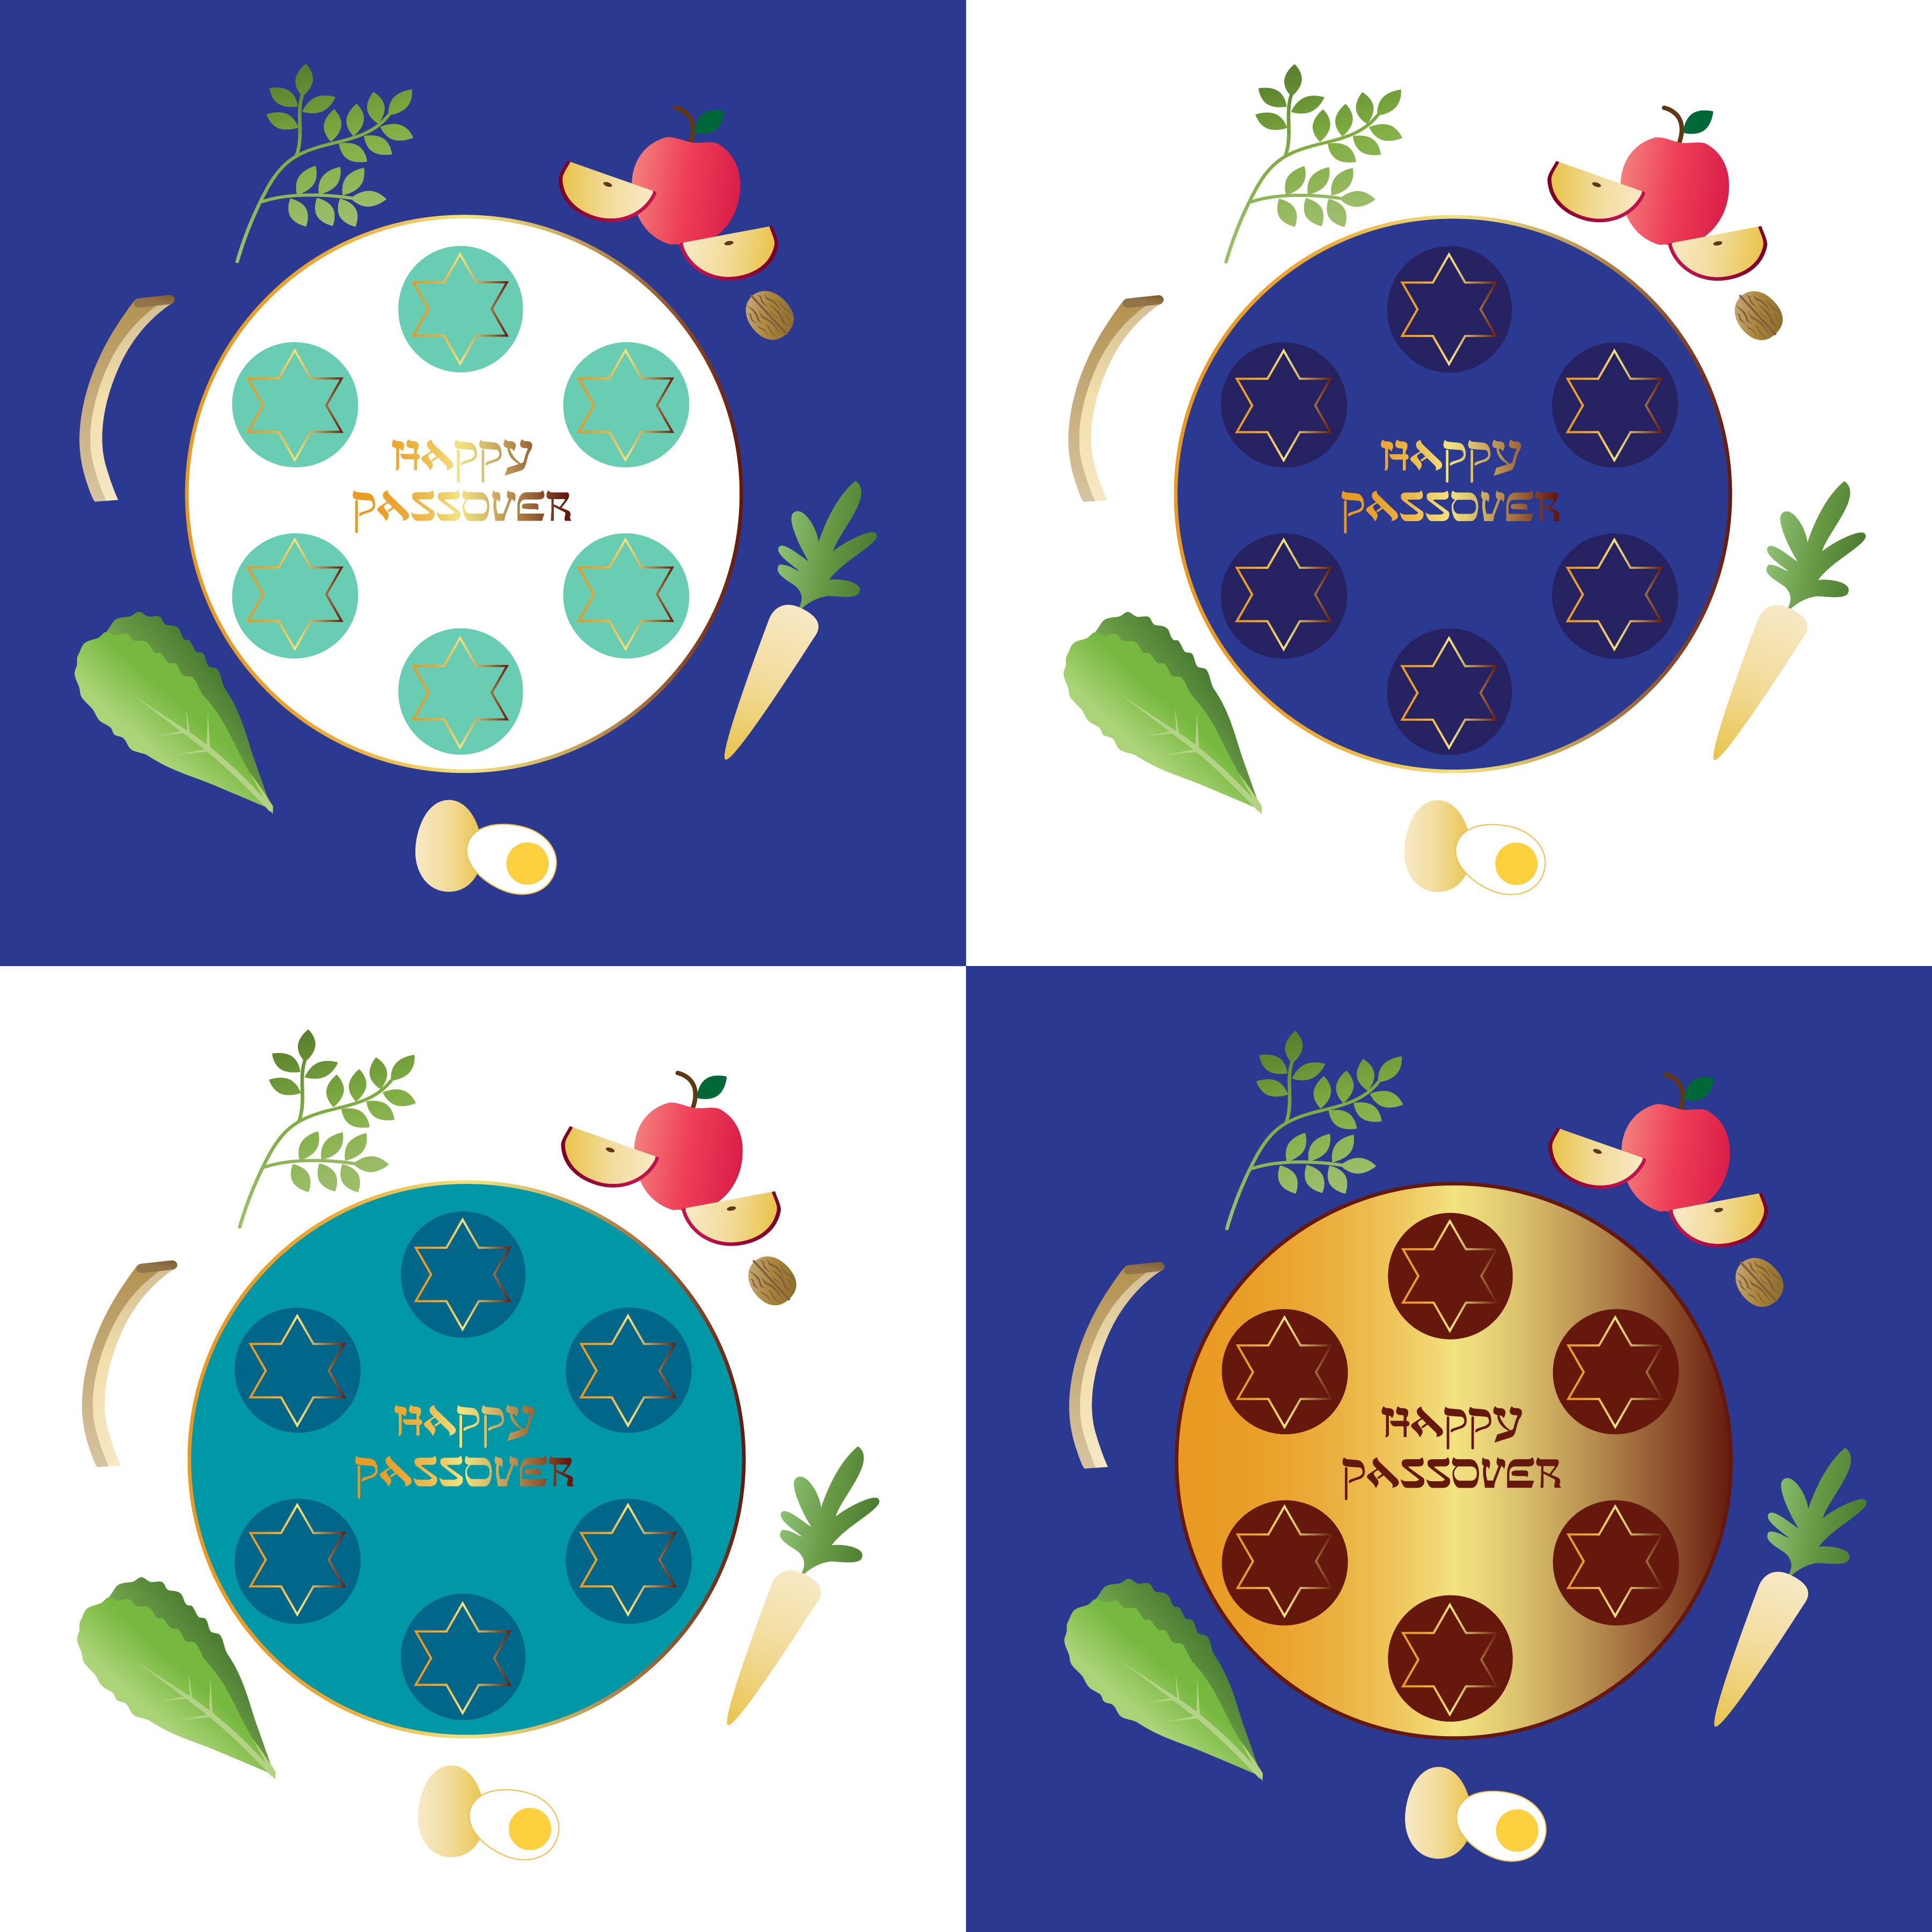 Passover seder plates with food - Download Free Vectors, Clipart ...